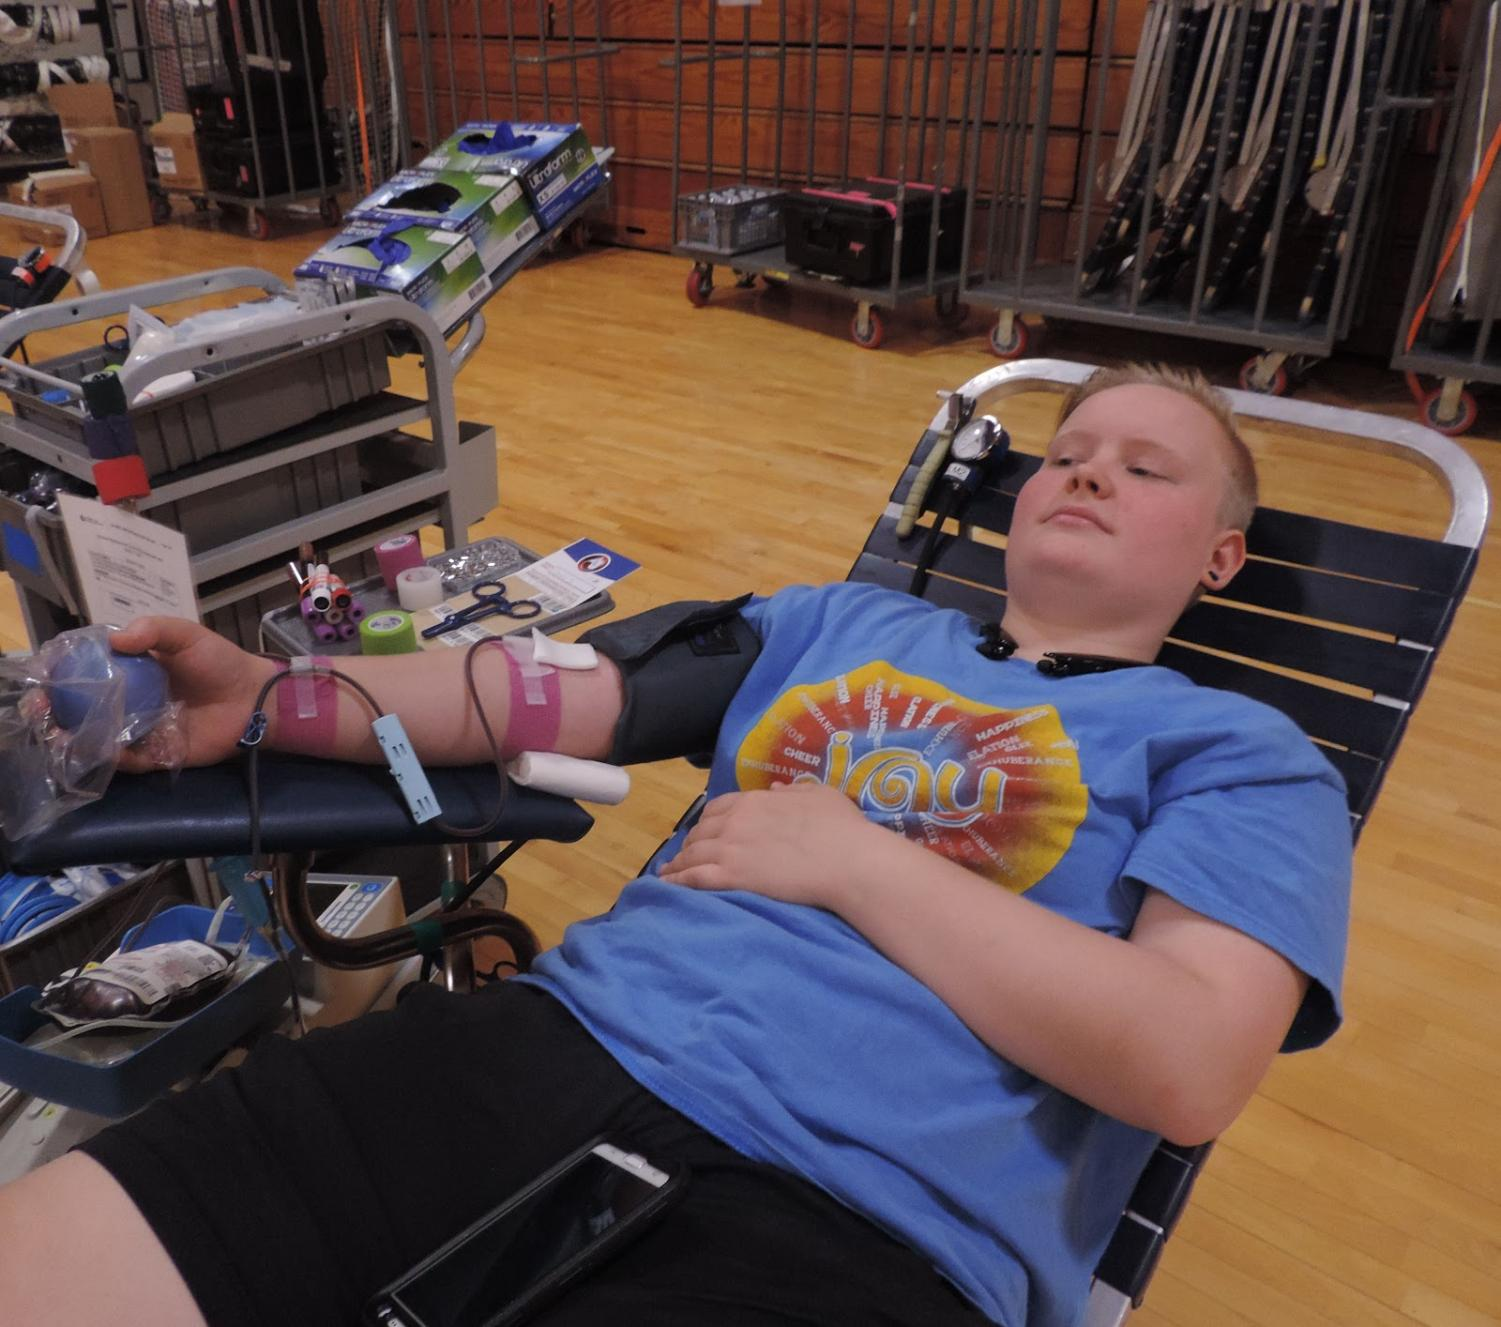 Junior Alex Smothers donates blood on Oct. 28 at 12:00 pm in the upper gym. After the students finish donating blood, they are given snacks, time to rest, and free t-shirts.